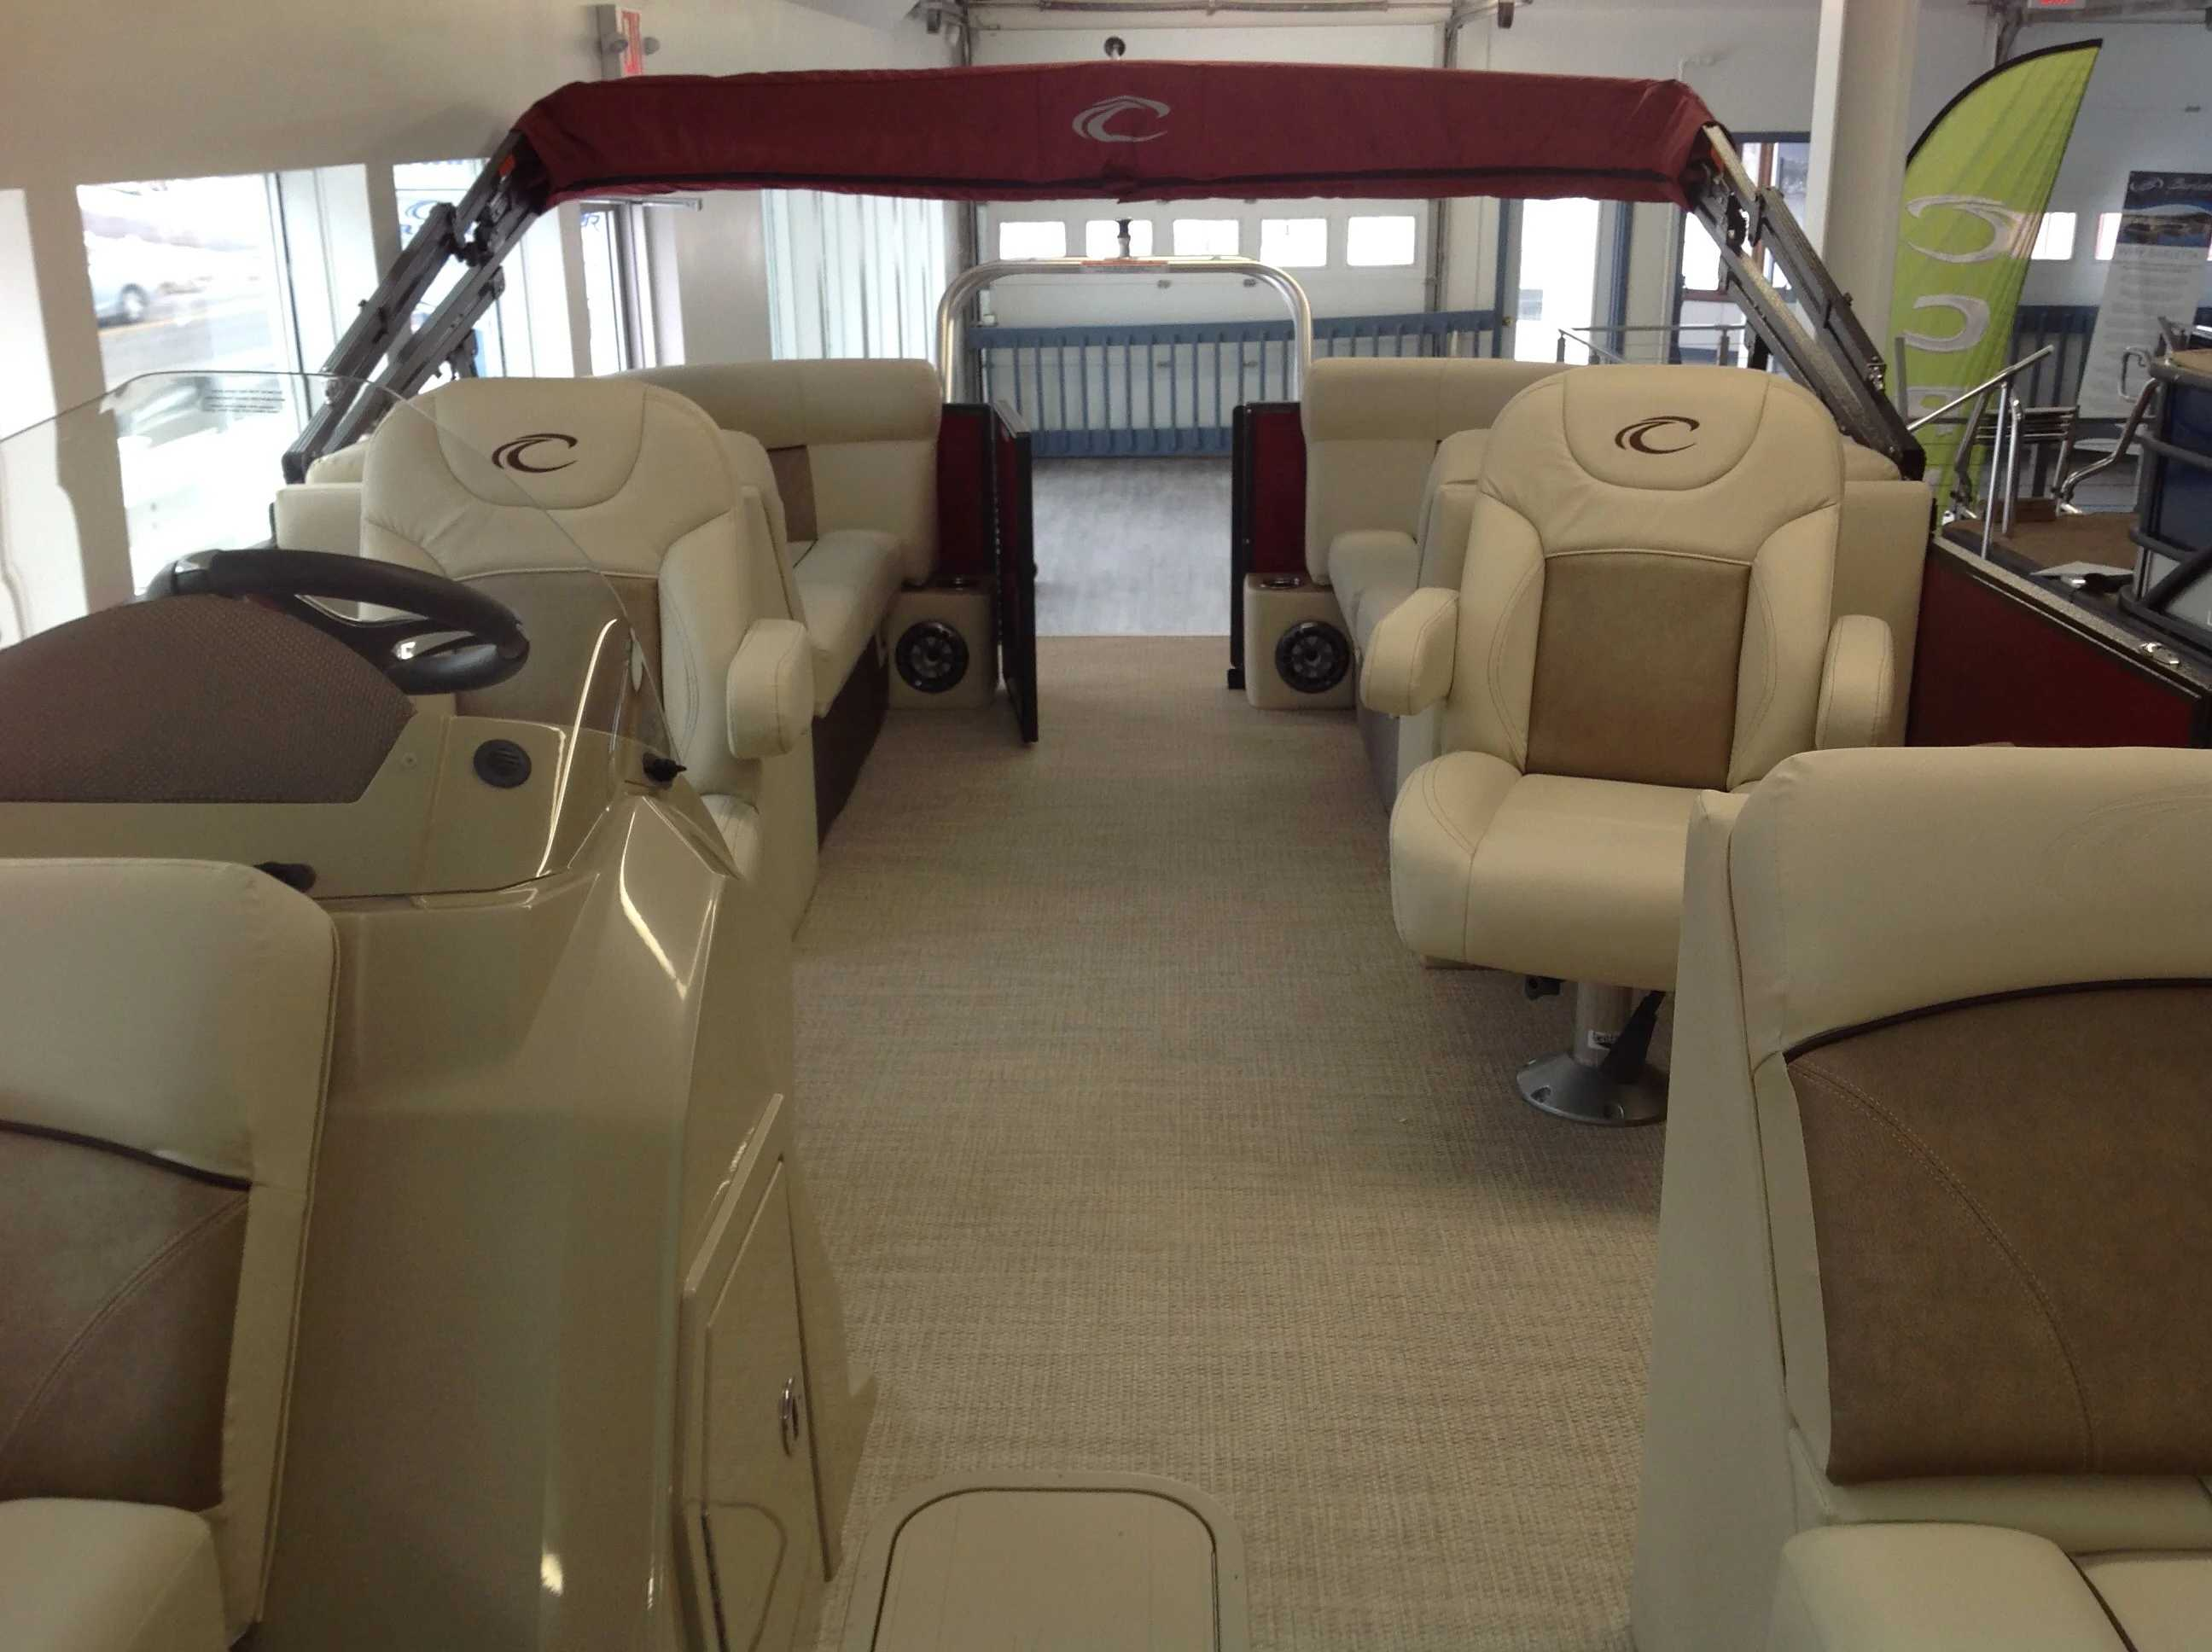 2021 Crest boat for sale, model of the boat is Cl Dlx 220slc & Image # 6 of 15